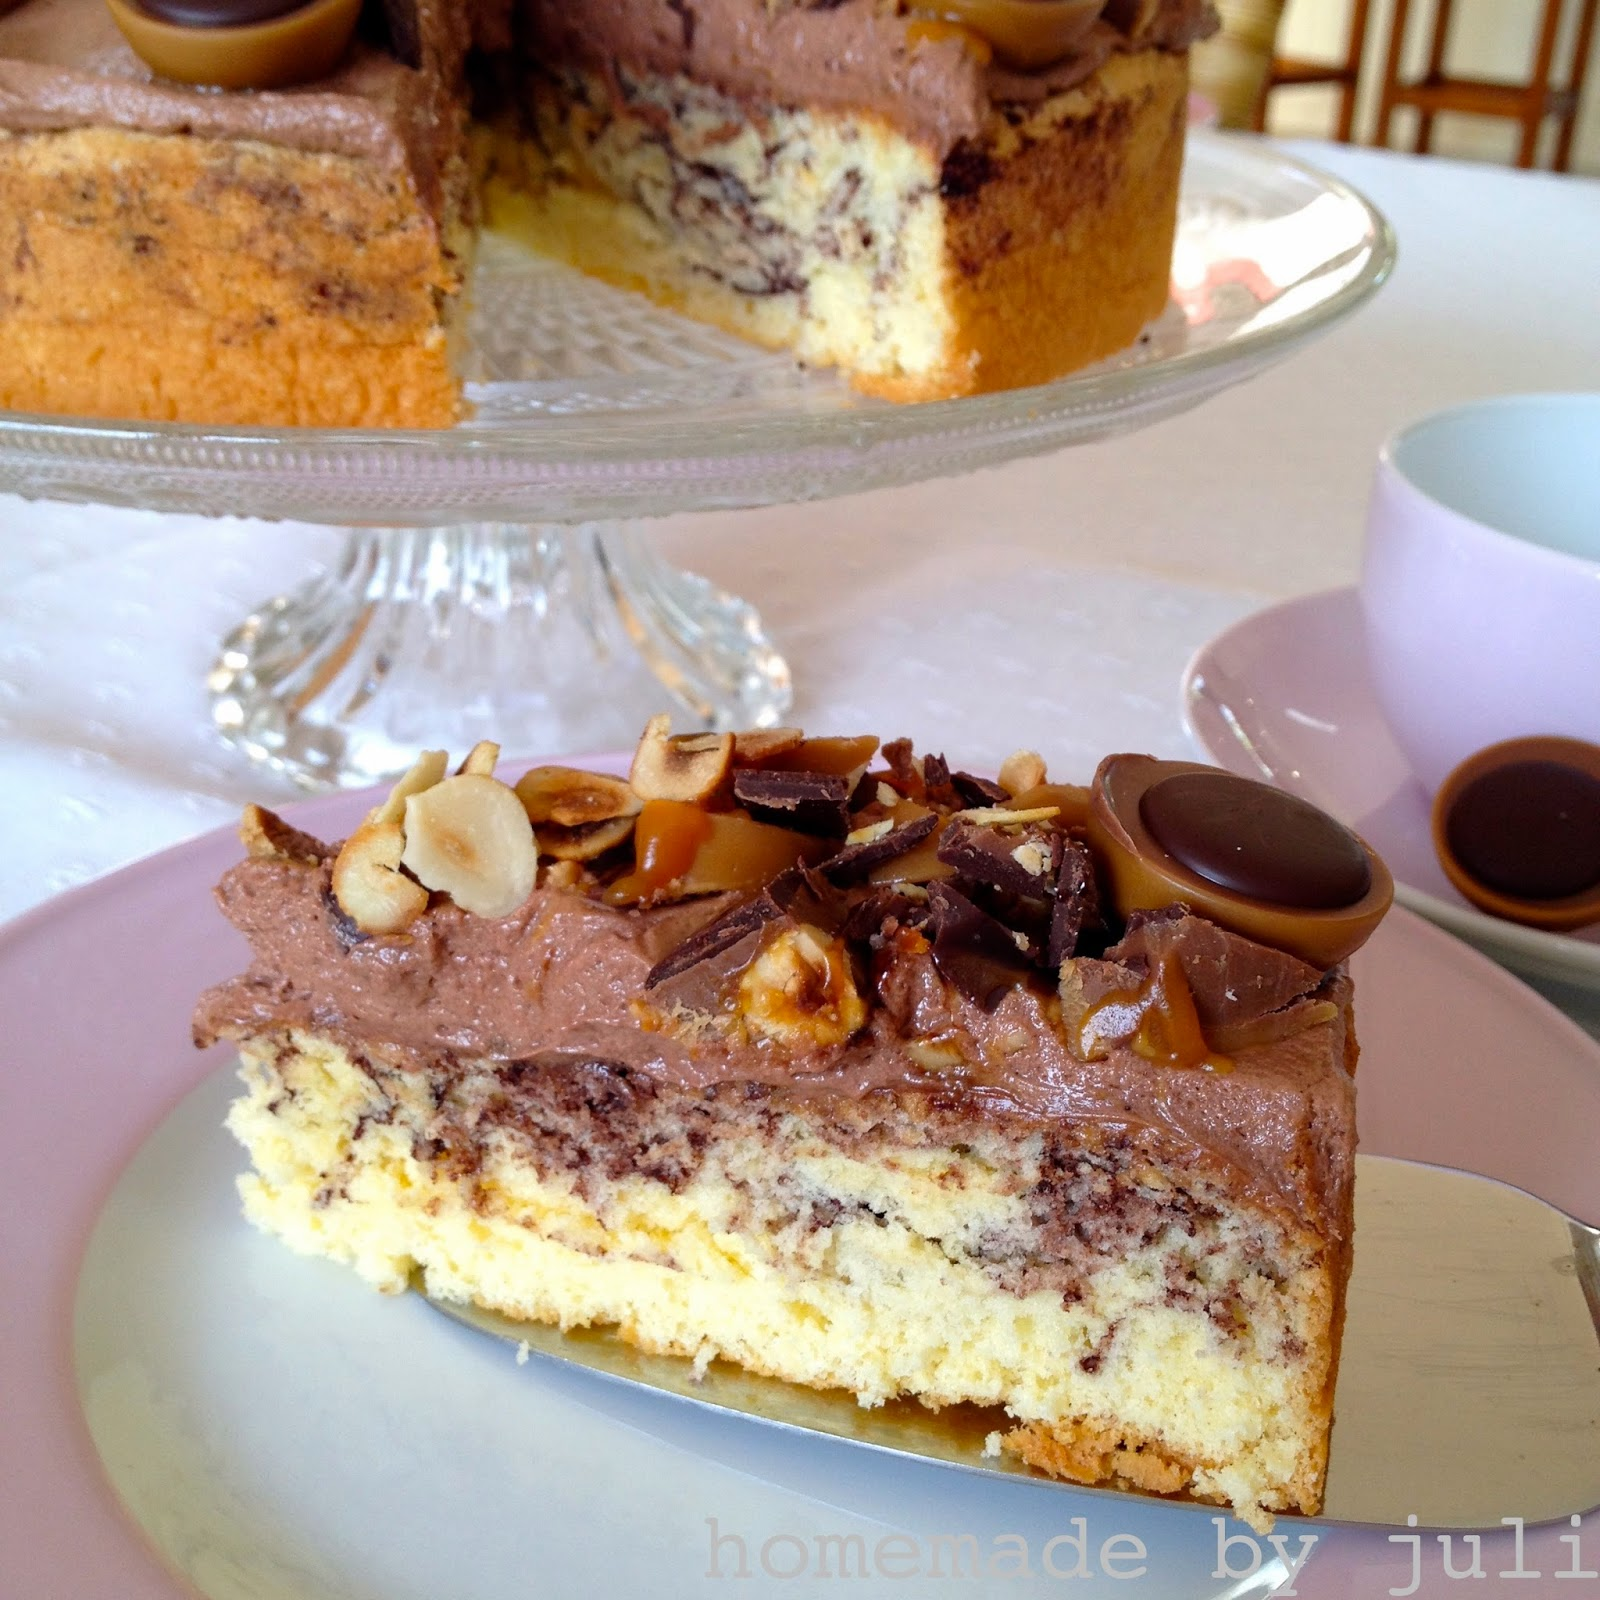 Homemade By Juli Toffifee Torte